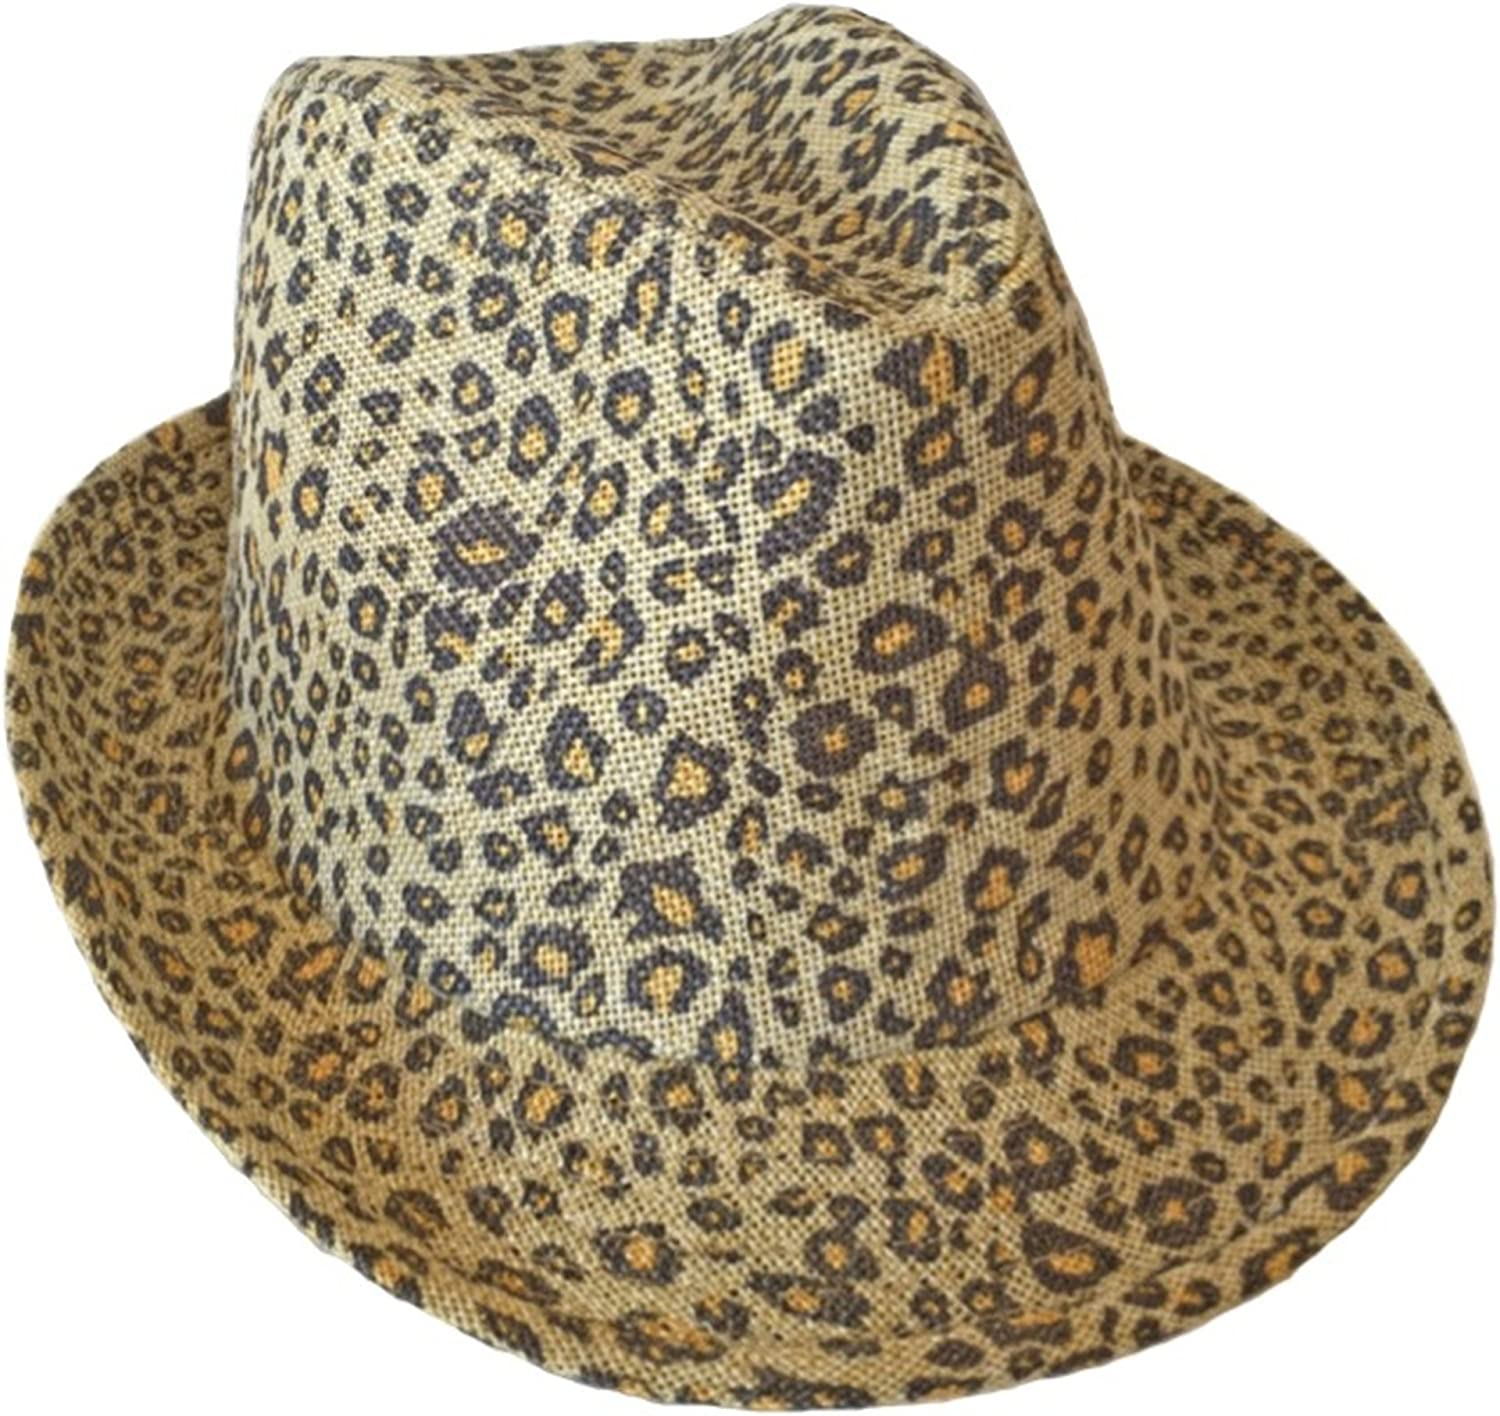 SUPERMAXX Fedora Trilby Crusher Hat with Leopard Printed for Women Beige